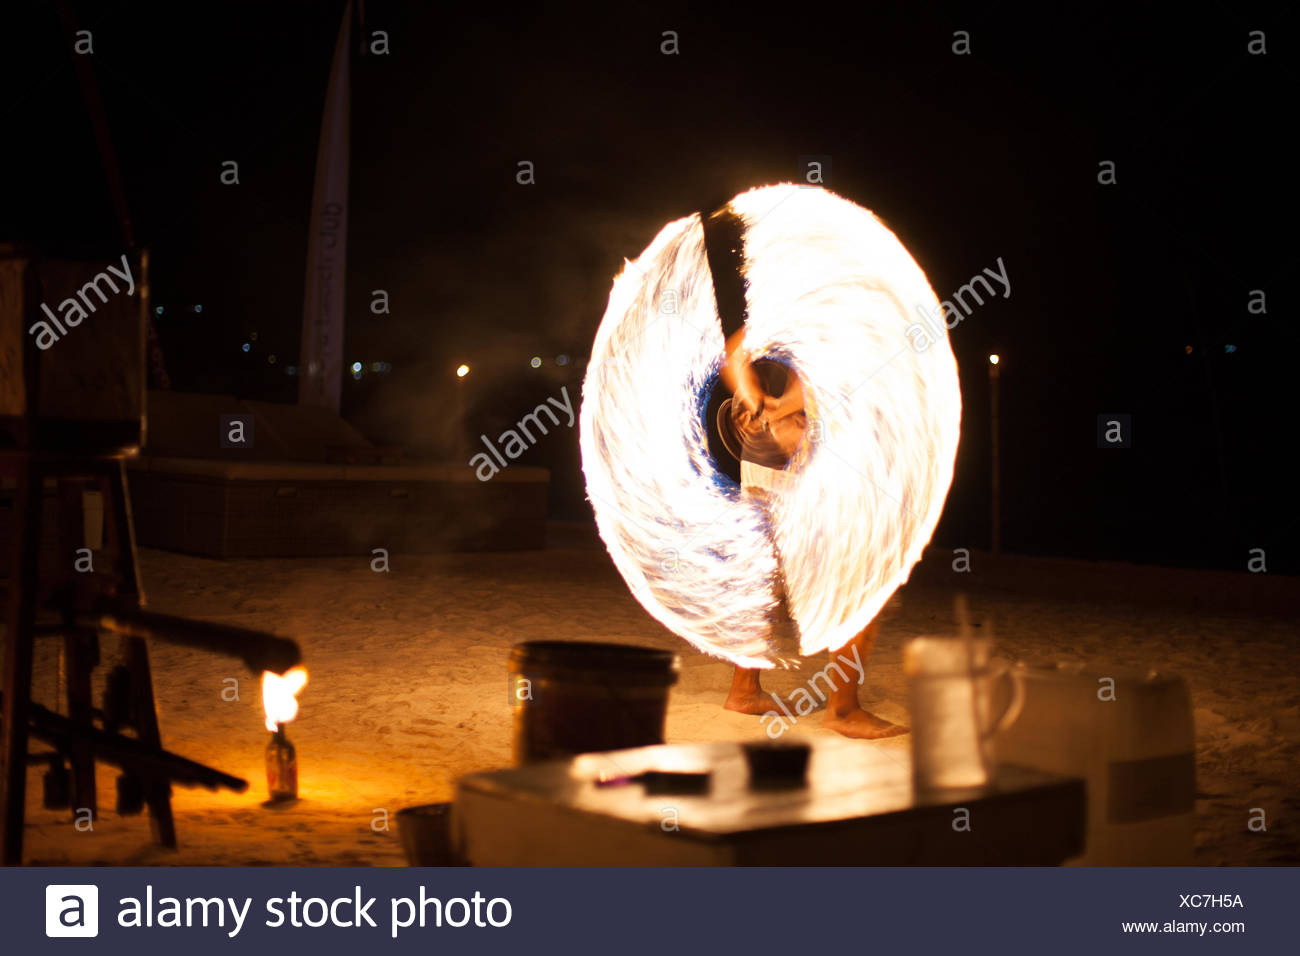 Man Doing Fire-Twirling Performance At Night - Stock Image